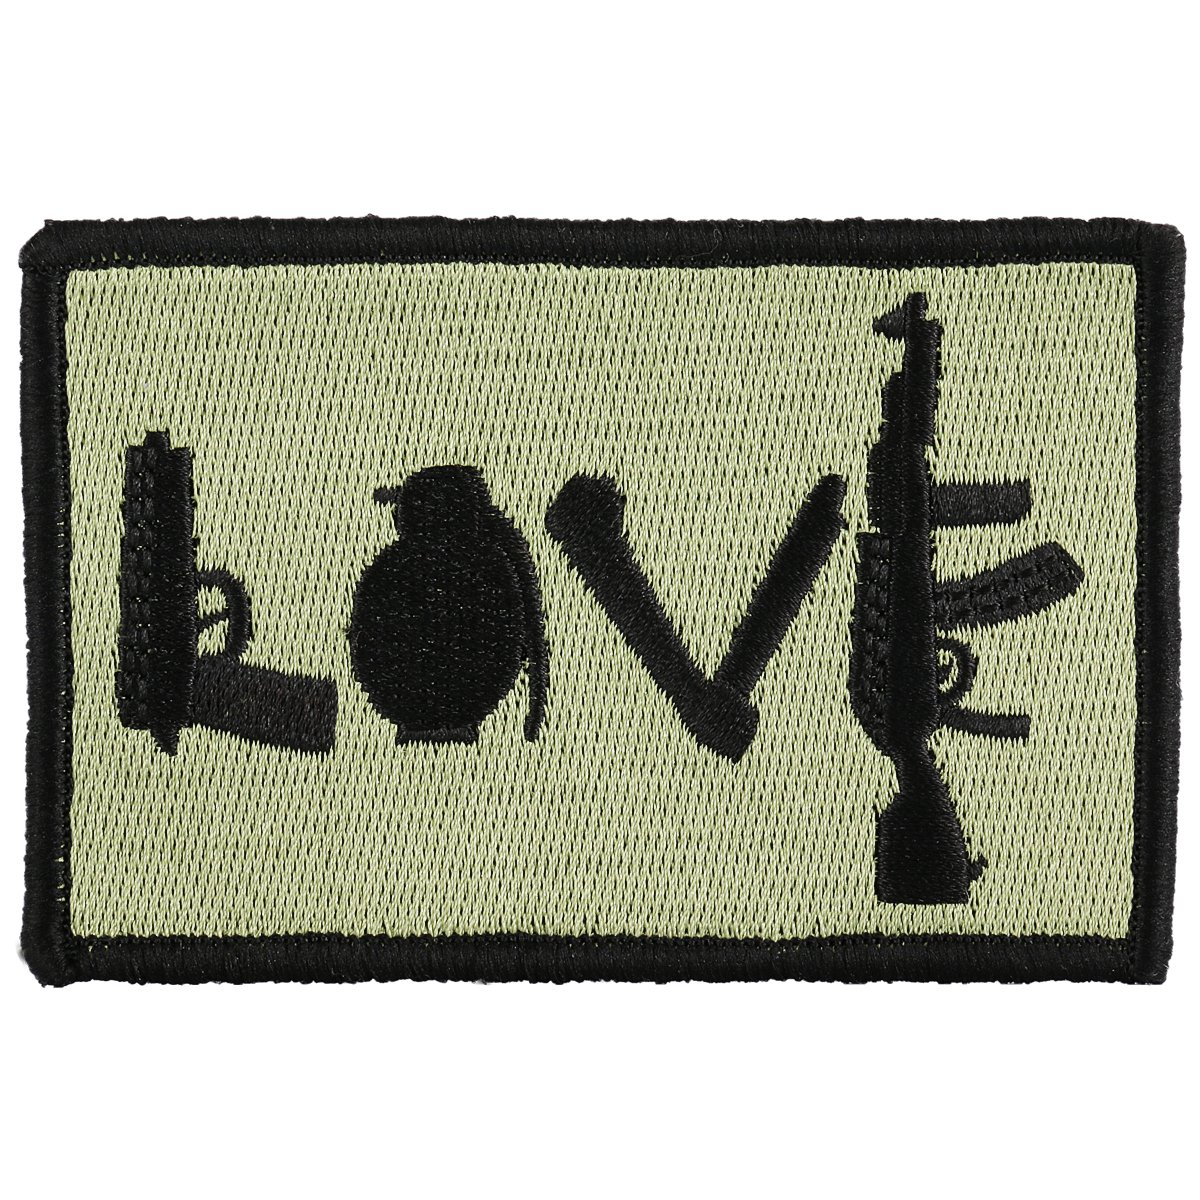 OneTigris Original Patch Tactical Morale Military Patch (LOVE - Olive Green) 4337020637